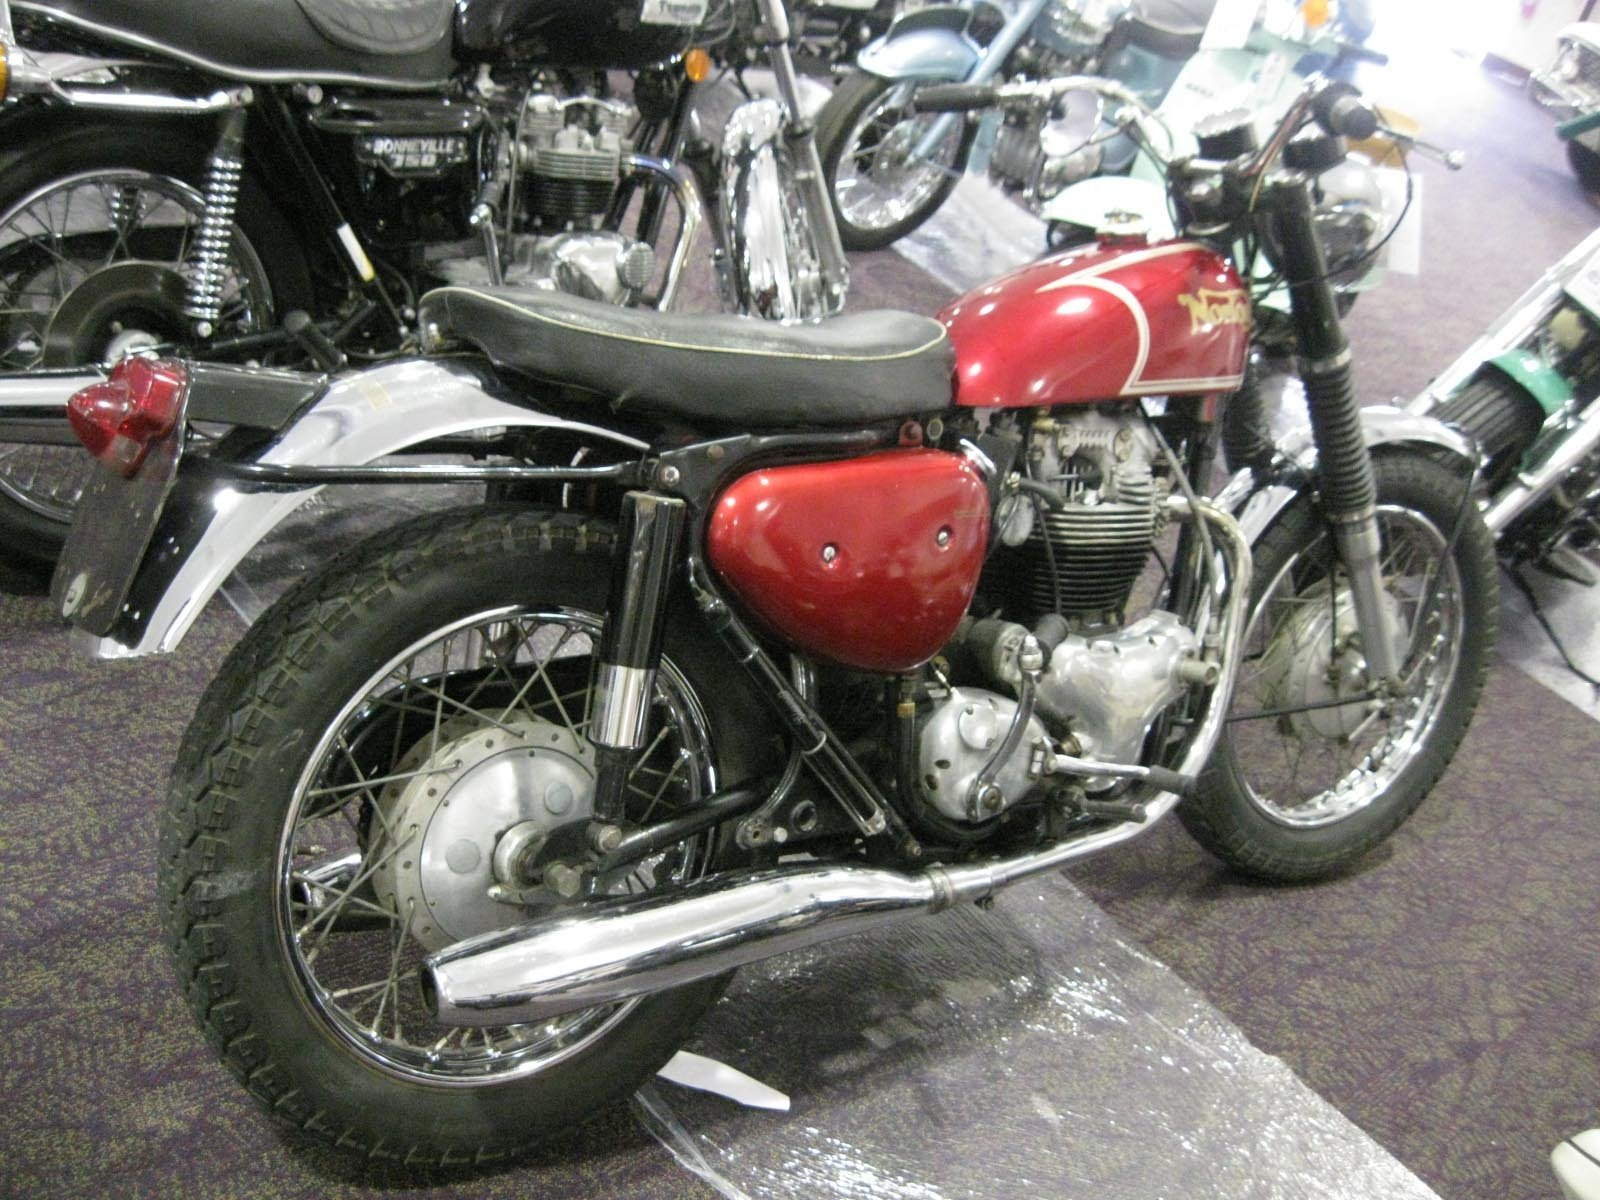 1967 NORTON P-11 750cc ORIGINAL